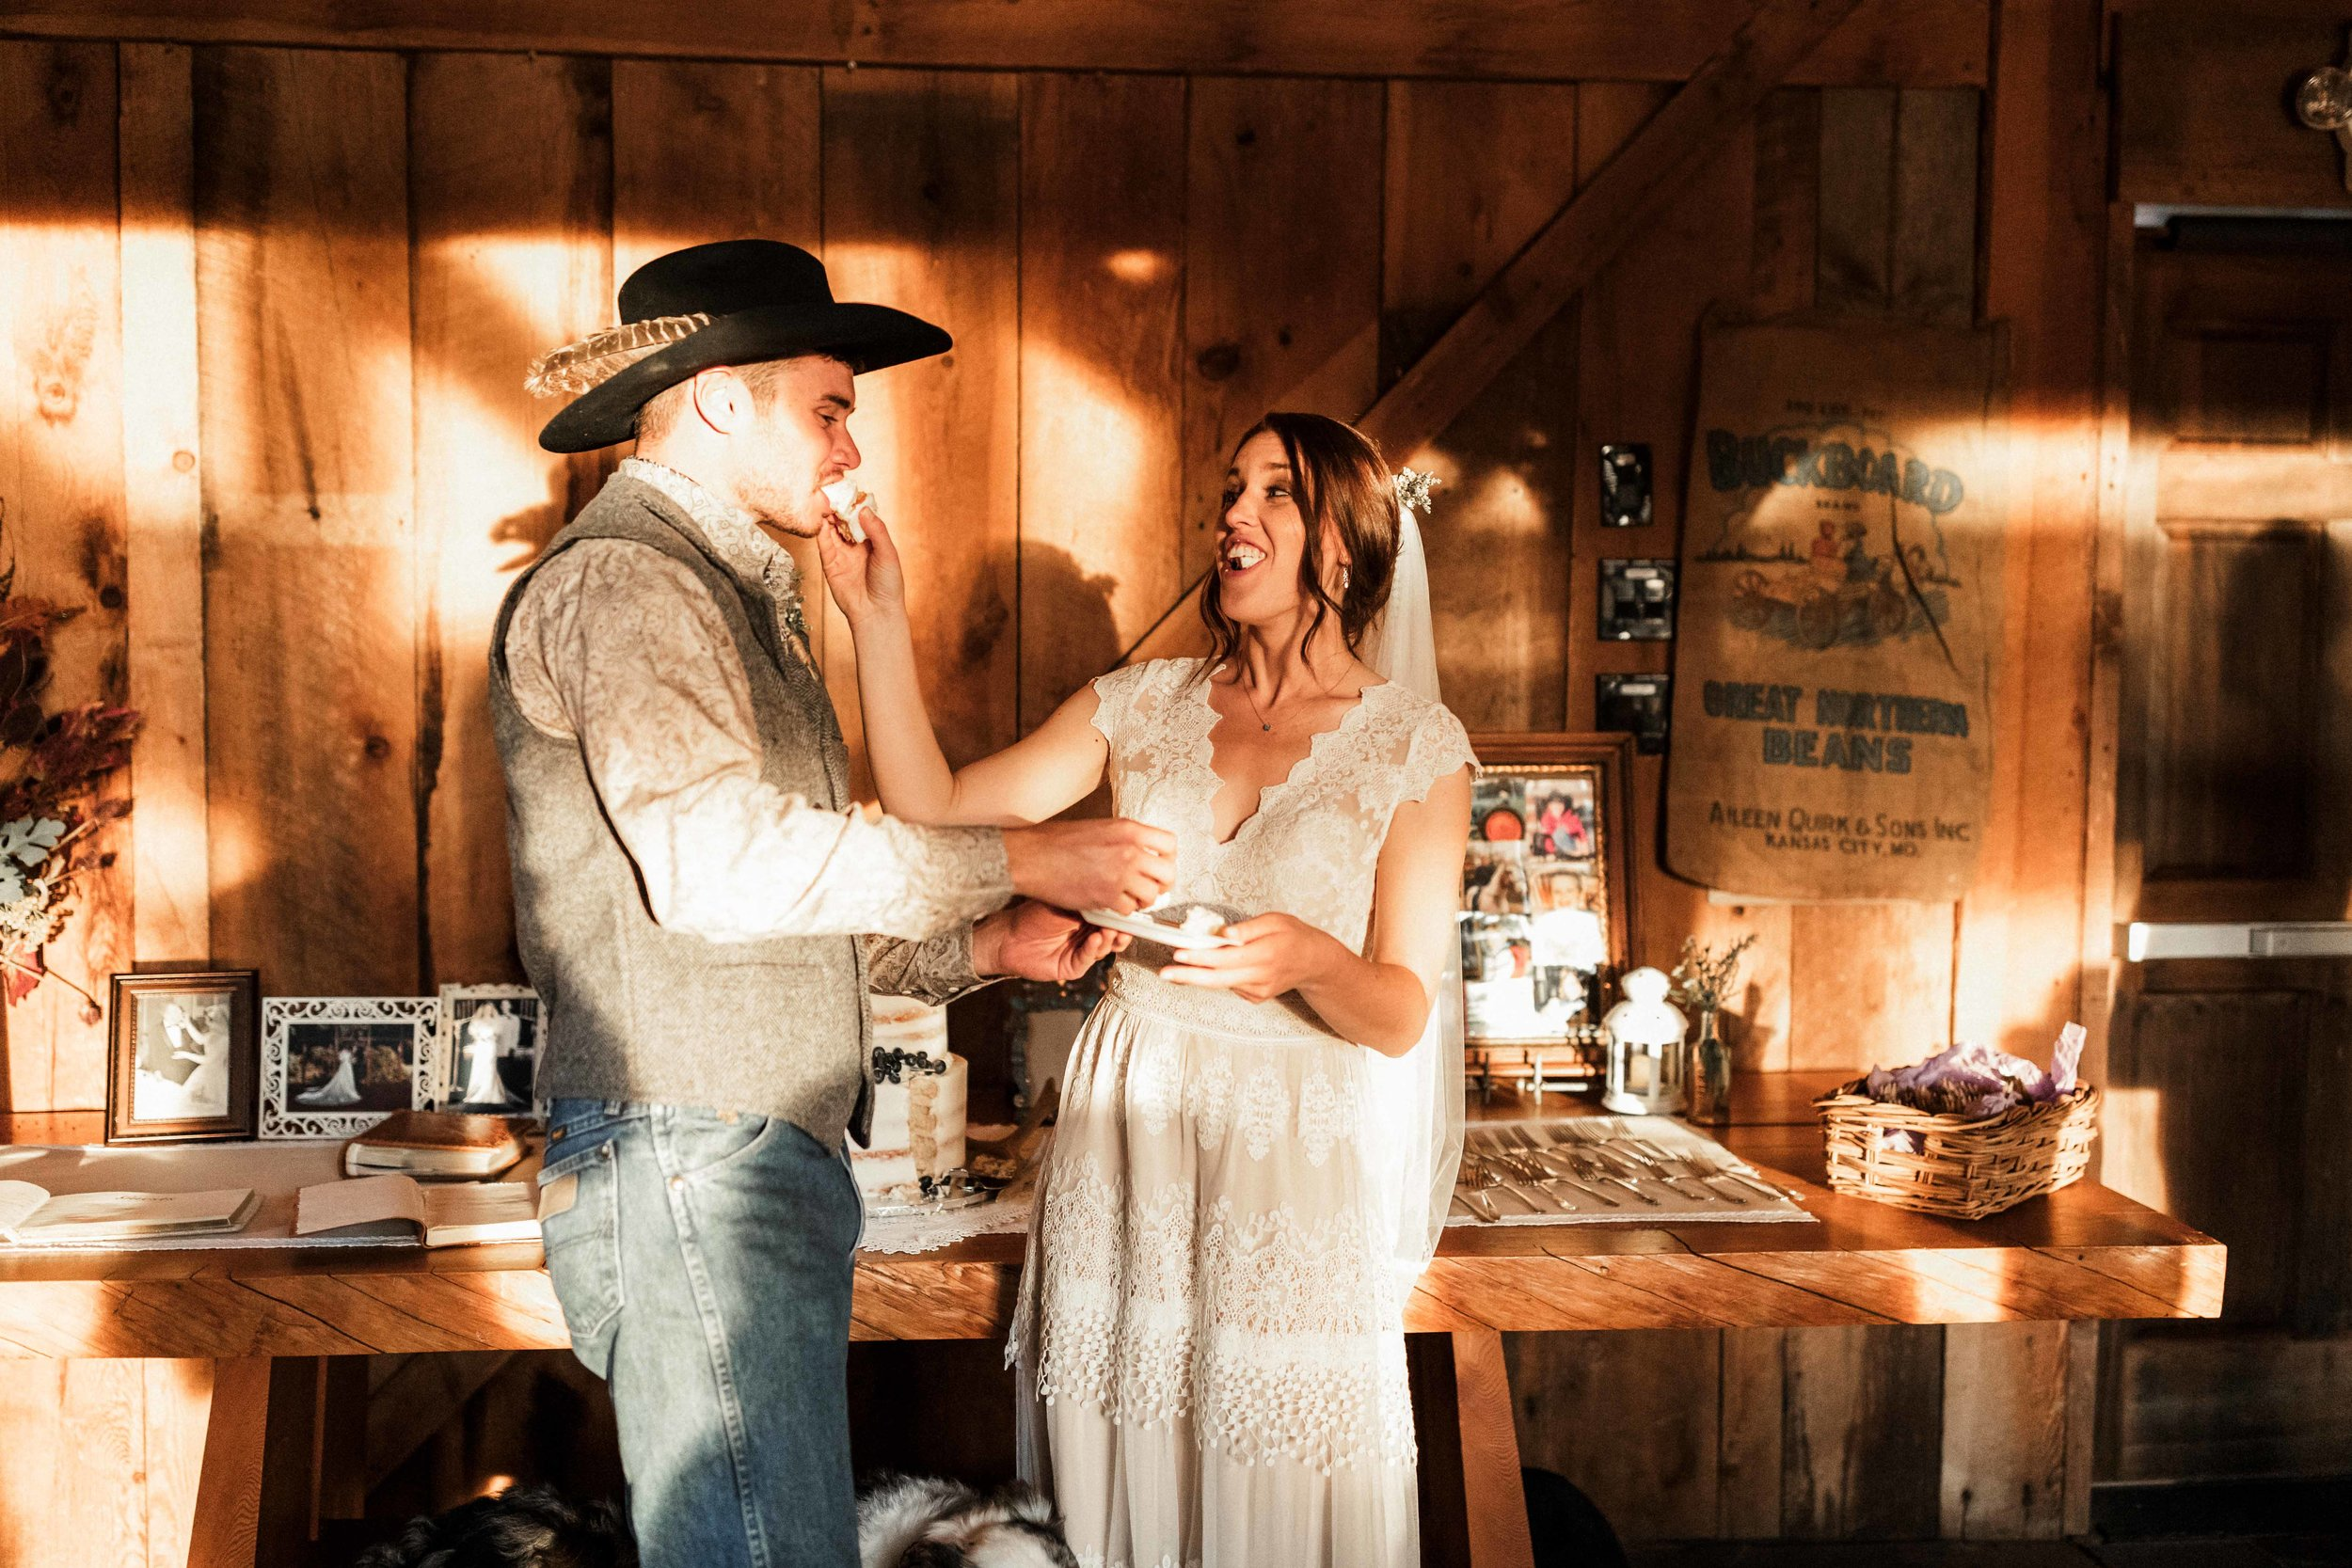 the-cattle-barn-wedding-82.jpg